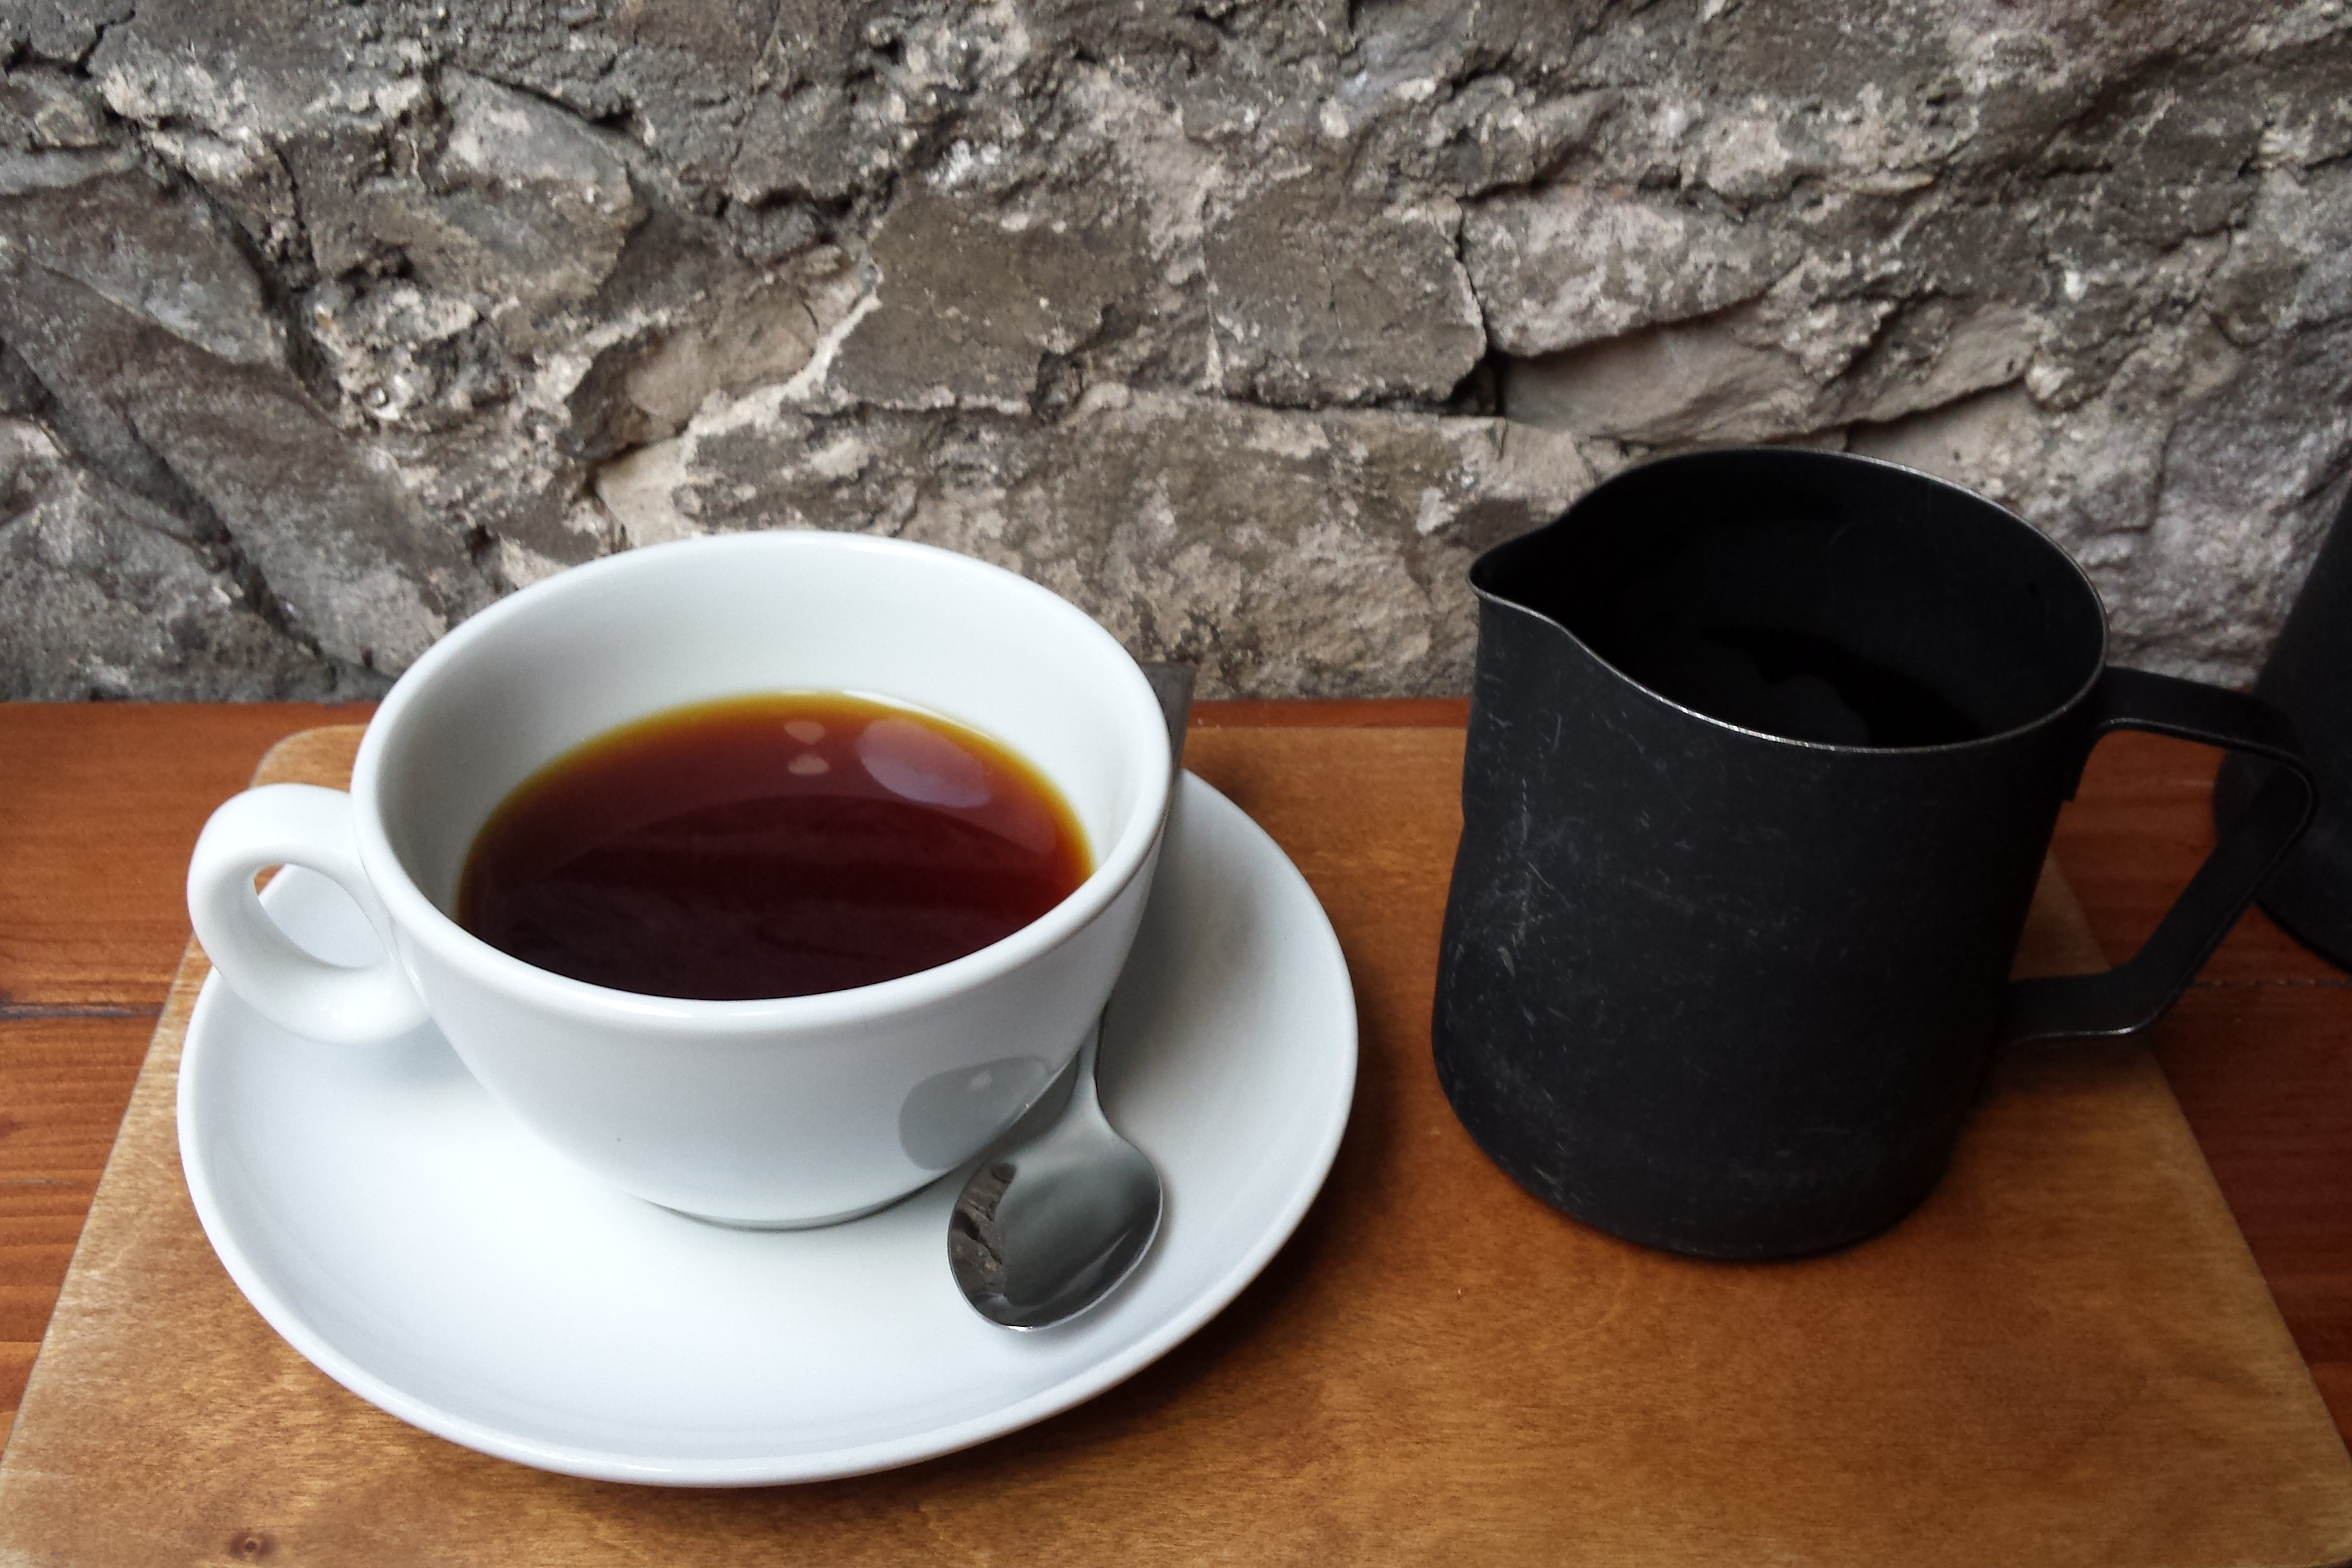 Filter coffee in a classic white cup and a black serving jug.